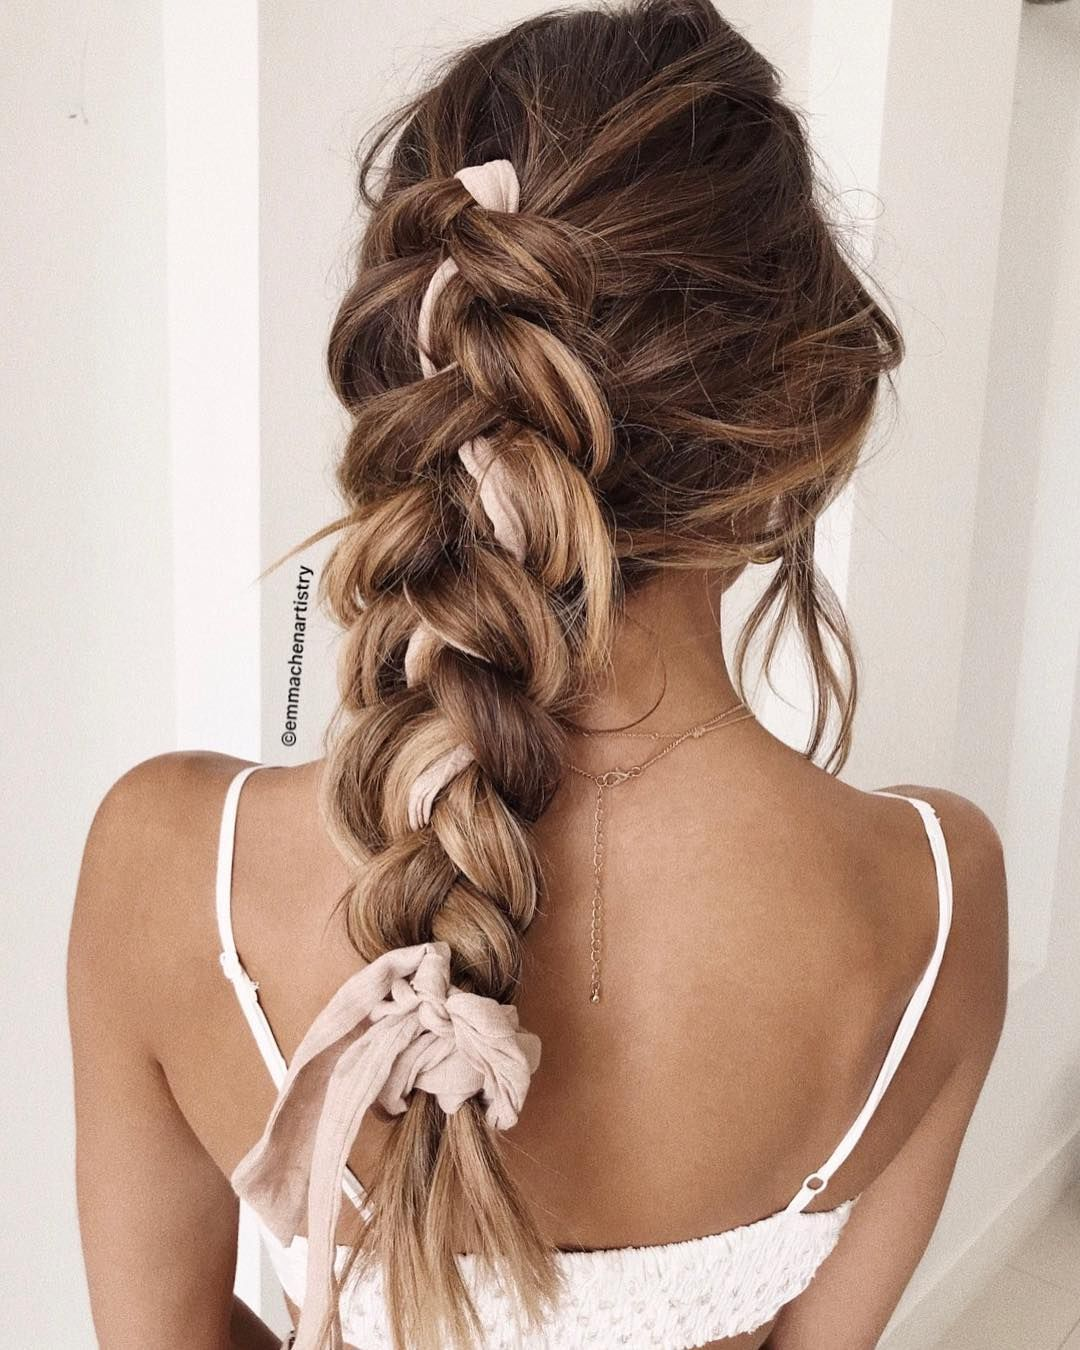 Hairstyle Inspiration Emma Chen Braids For Long Hair Braided Hairstyles Updo